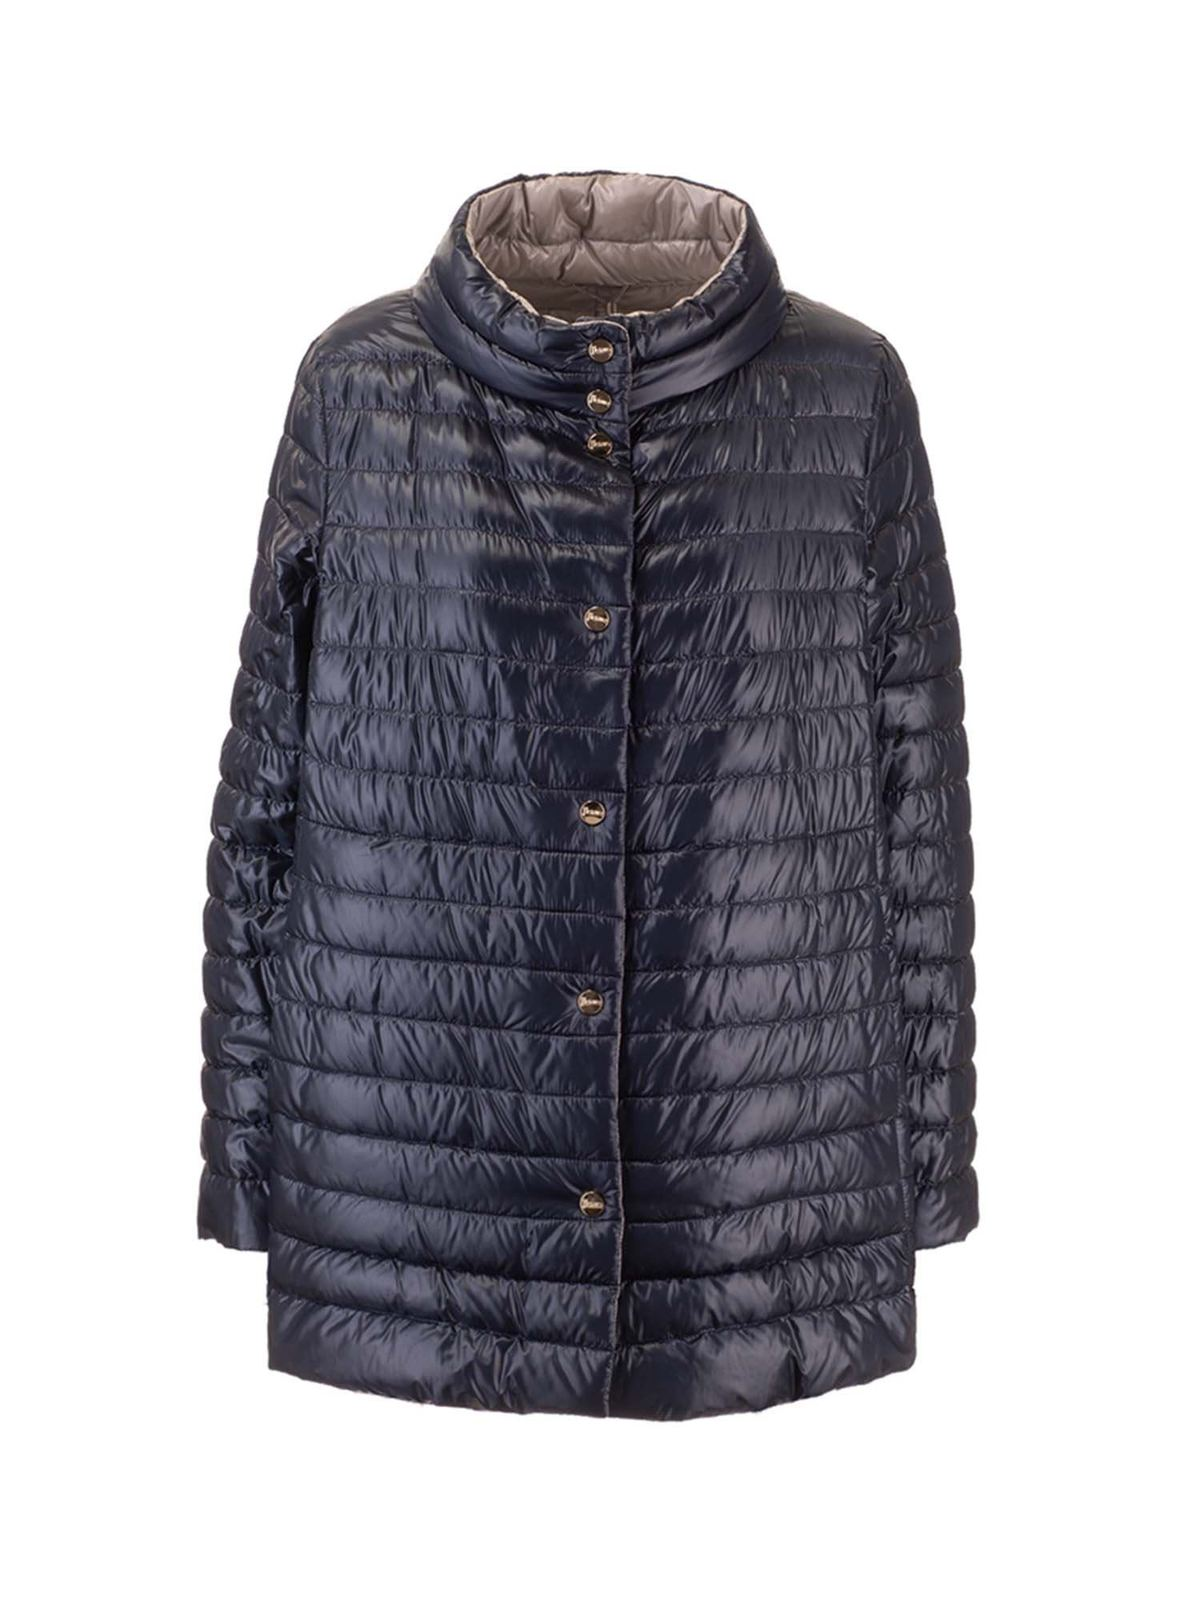 Herno REVERSIBLE DOWN JACKET IN NAVY BLUE AND GREY